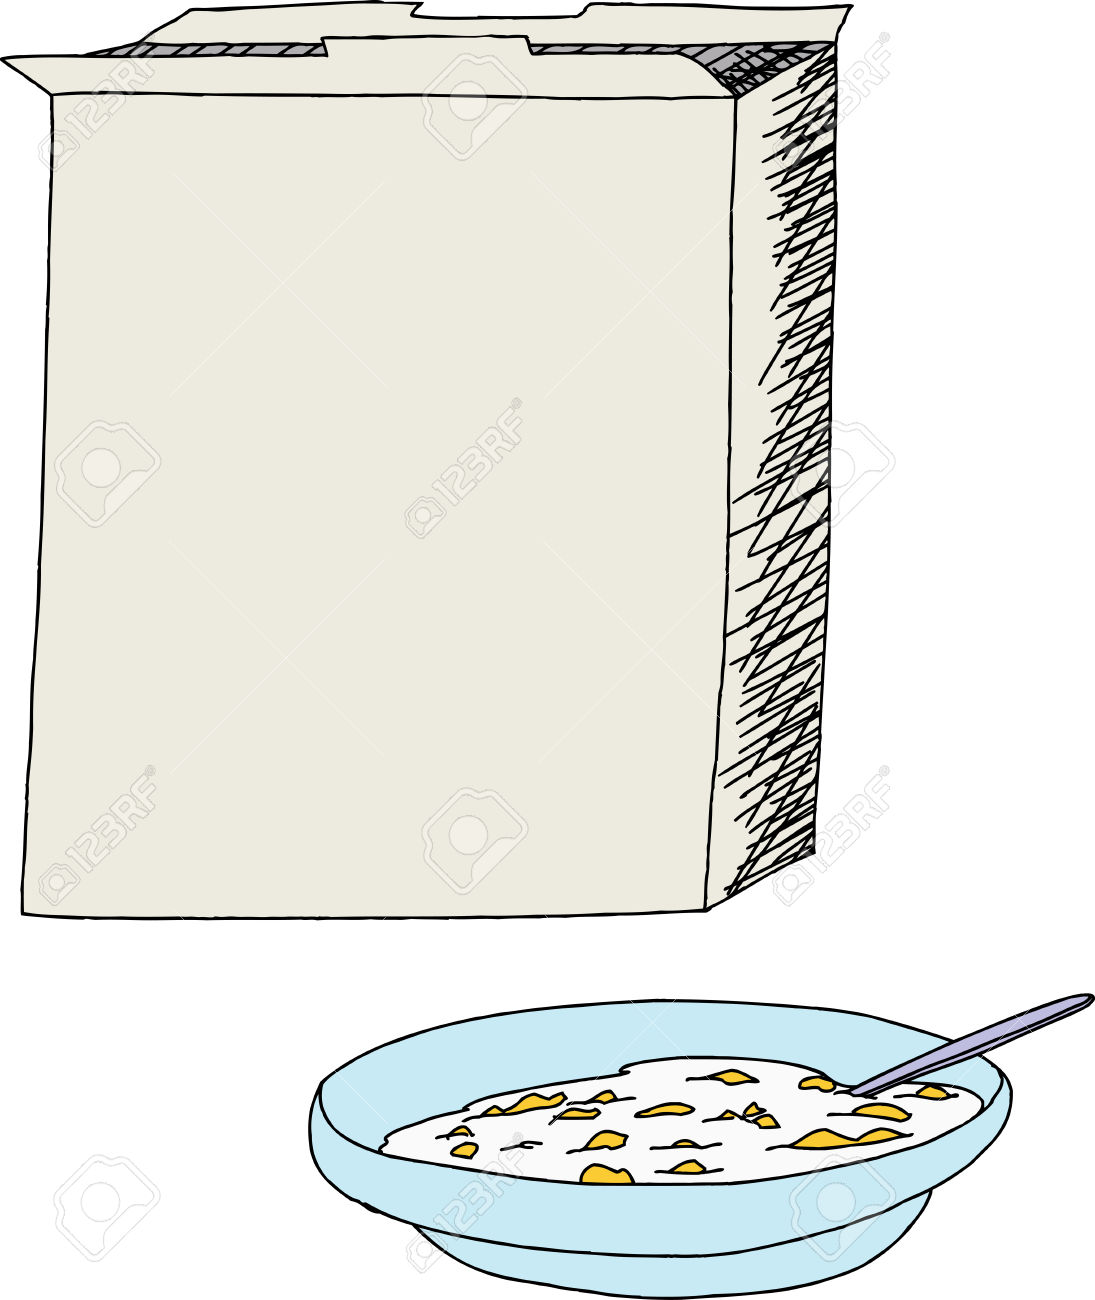 cereal boc clipart #8